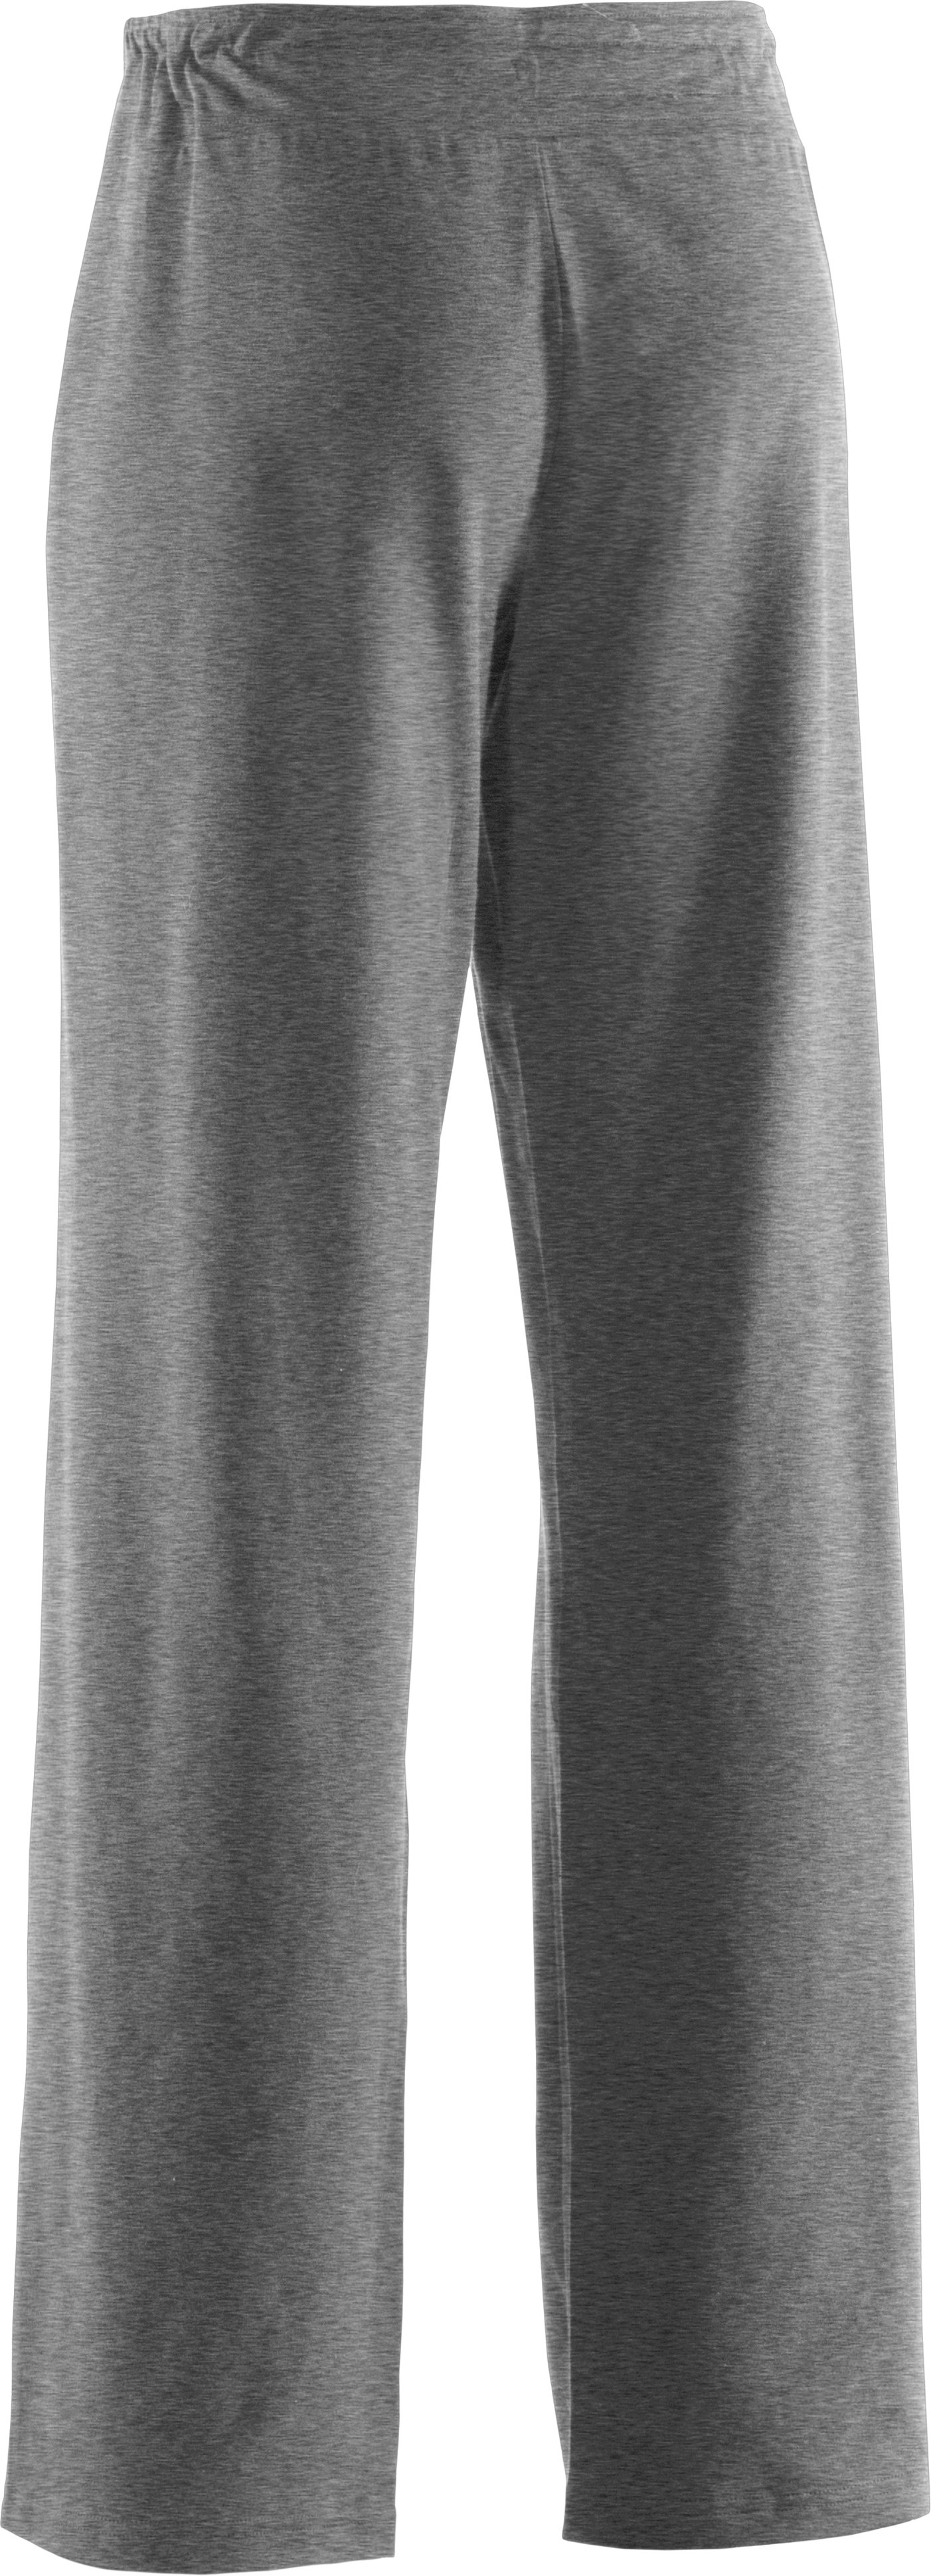 Women's Charged Cotton® Pant, True Gray Heather